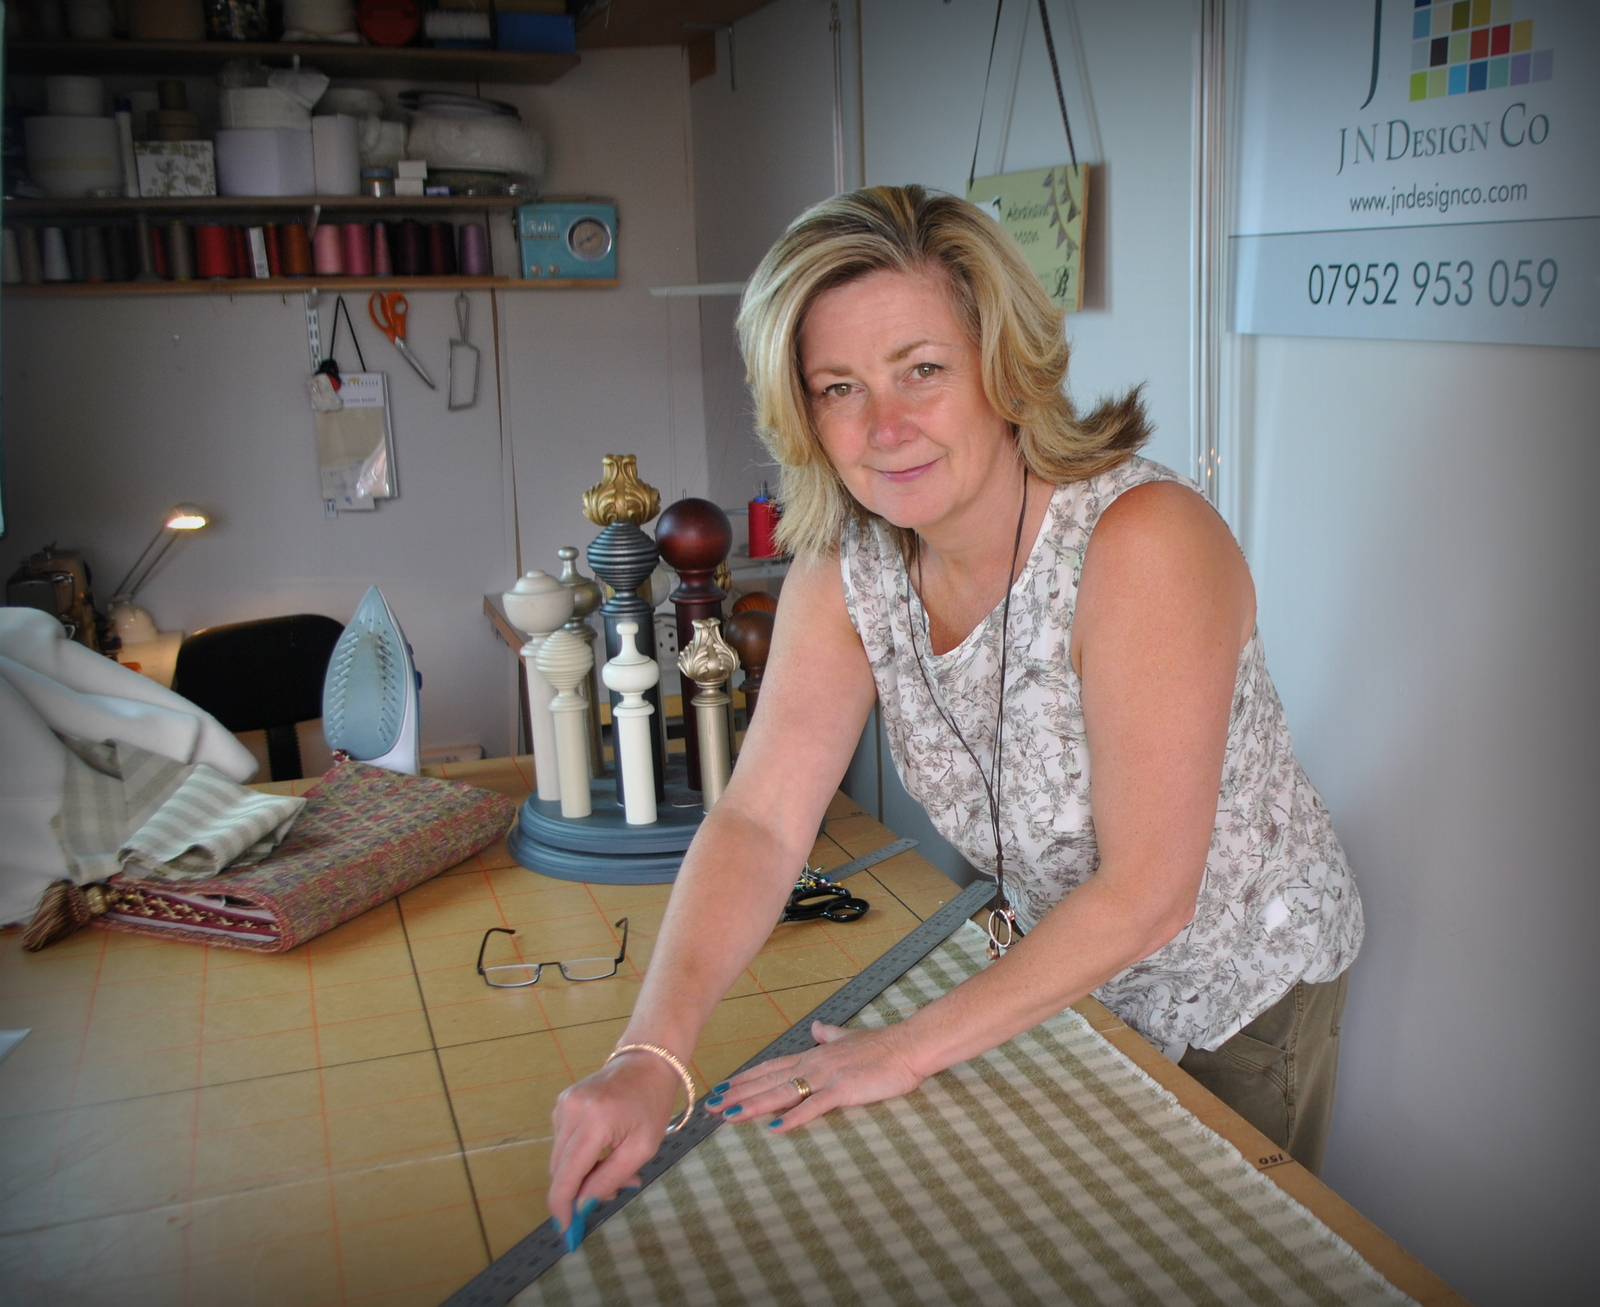 Jo Naylor cutting material to size in her workshop